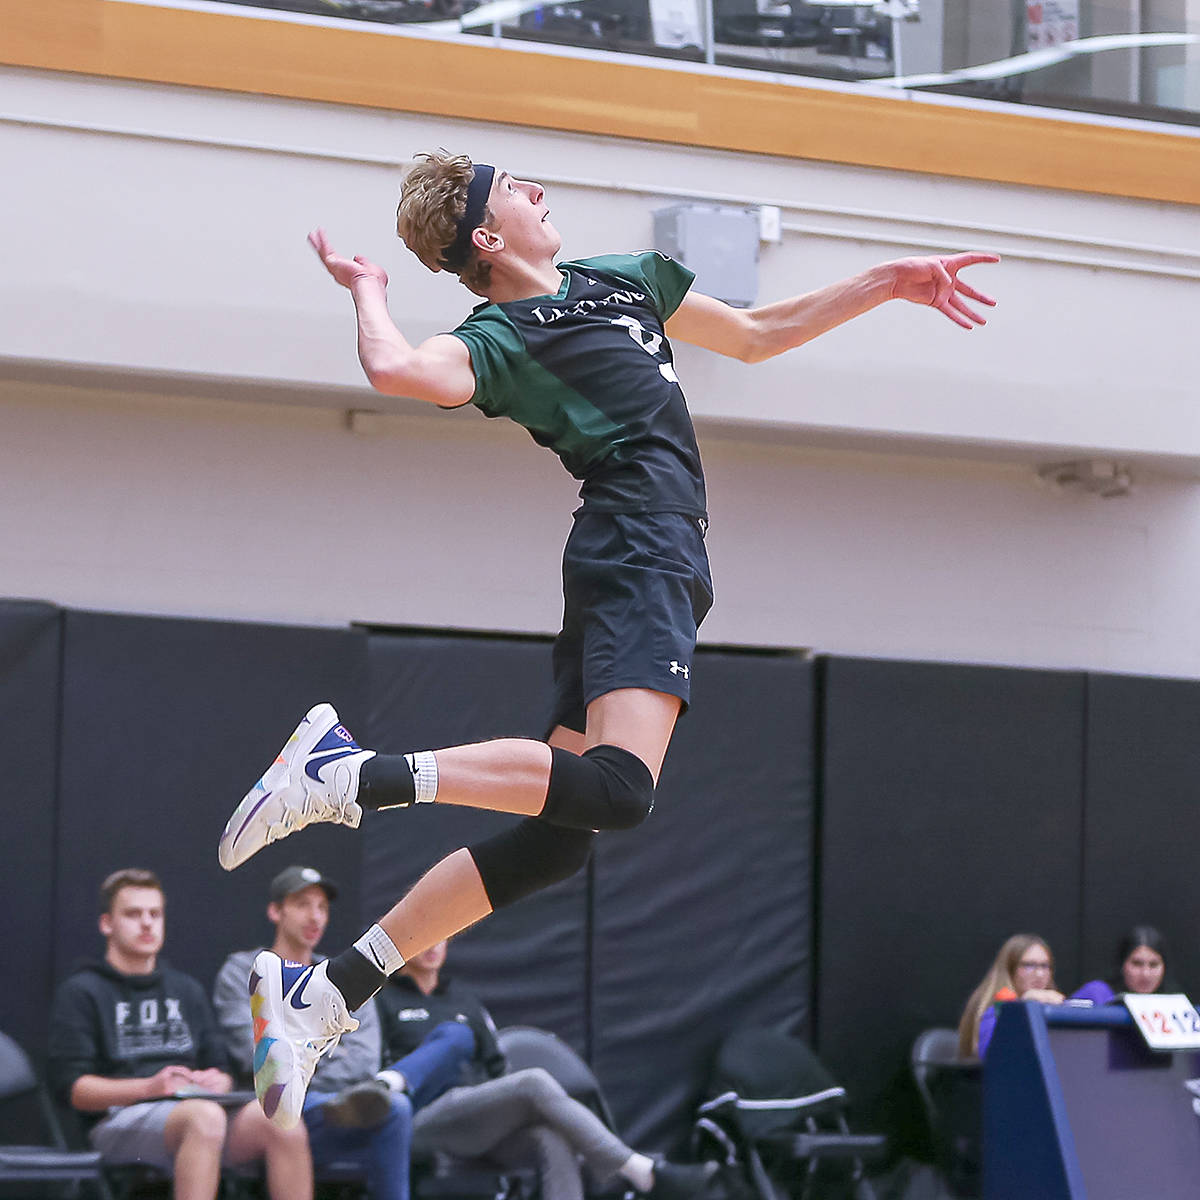 Langley Christian Lightning placed second at the 2A Boys BC Secondary School Volleyball Provincial Championships at Langley Events Centre on Saturday (Nov. 30). (Paul Yates/Vancouver Sports Pictures)